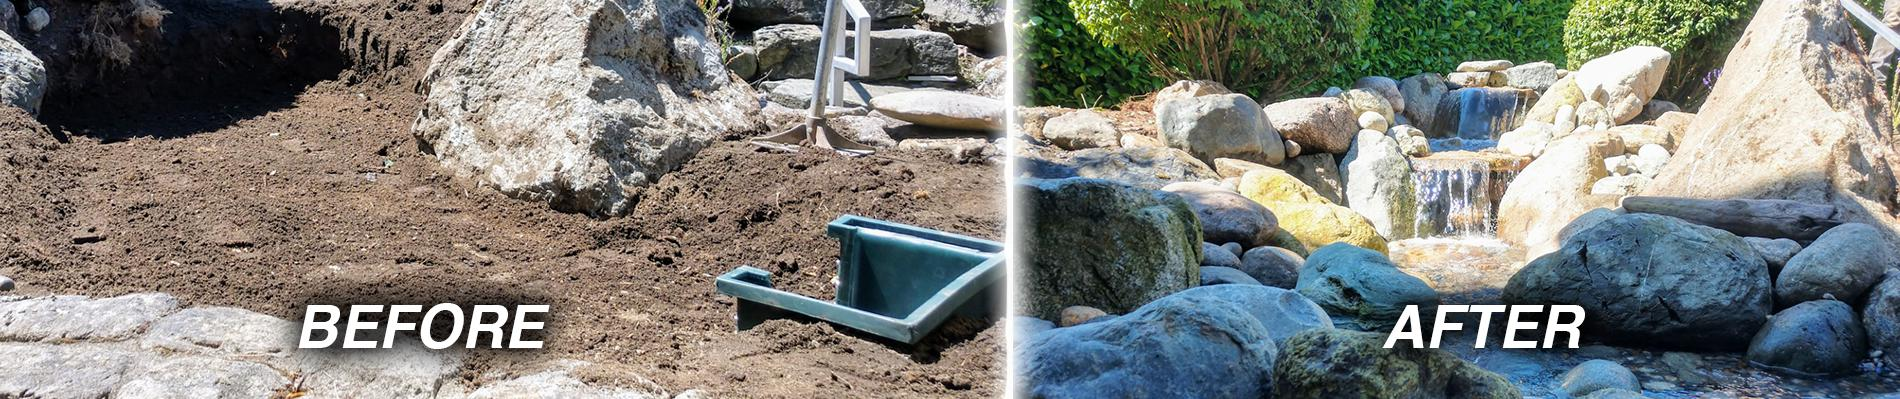 Installation and Pond Supplies in North Sound Area - Waterfall Pond Supply